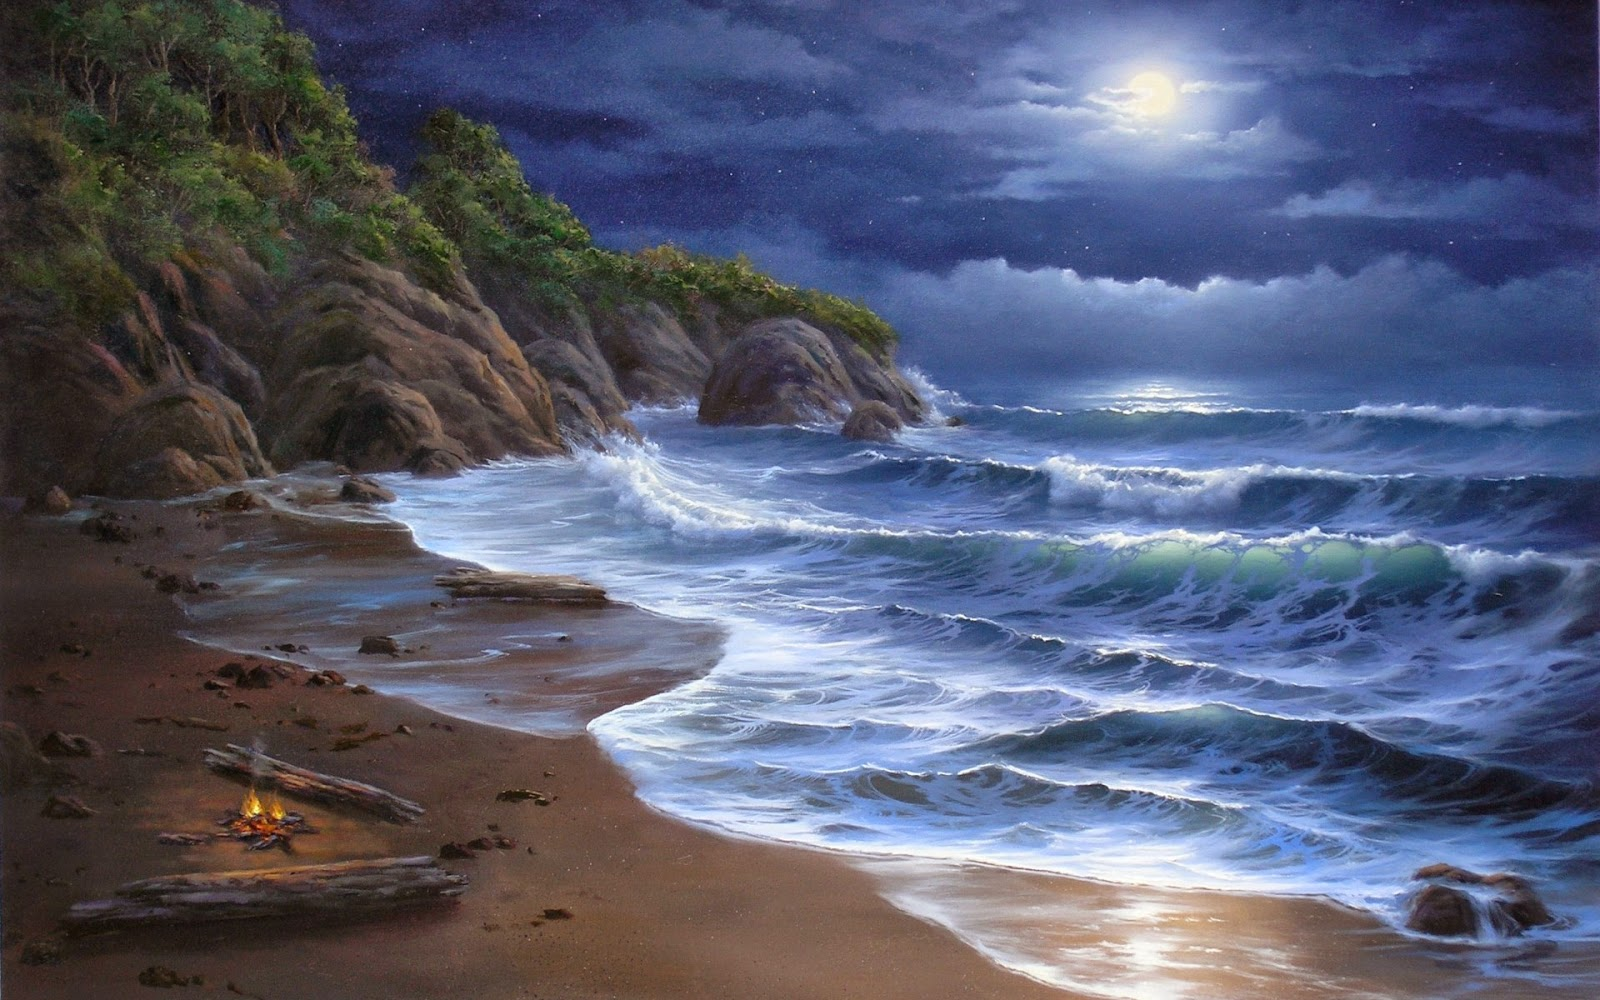 Natural-scenery-fullmoon-night-light-near-sea-waves-beach-landscape-digital-painting.jpg